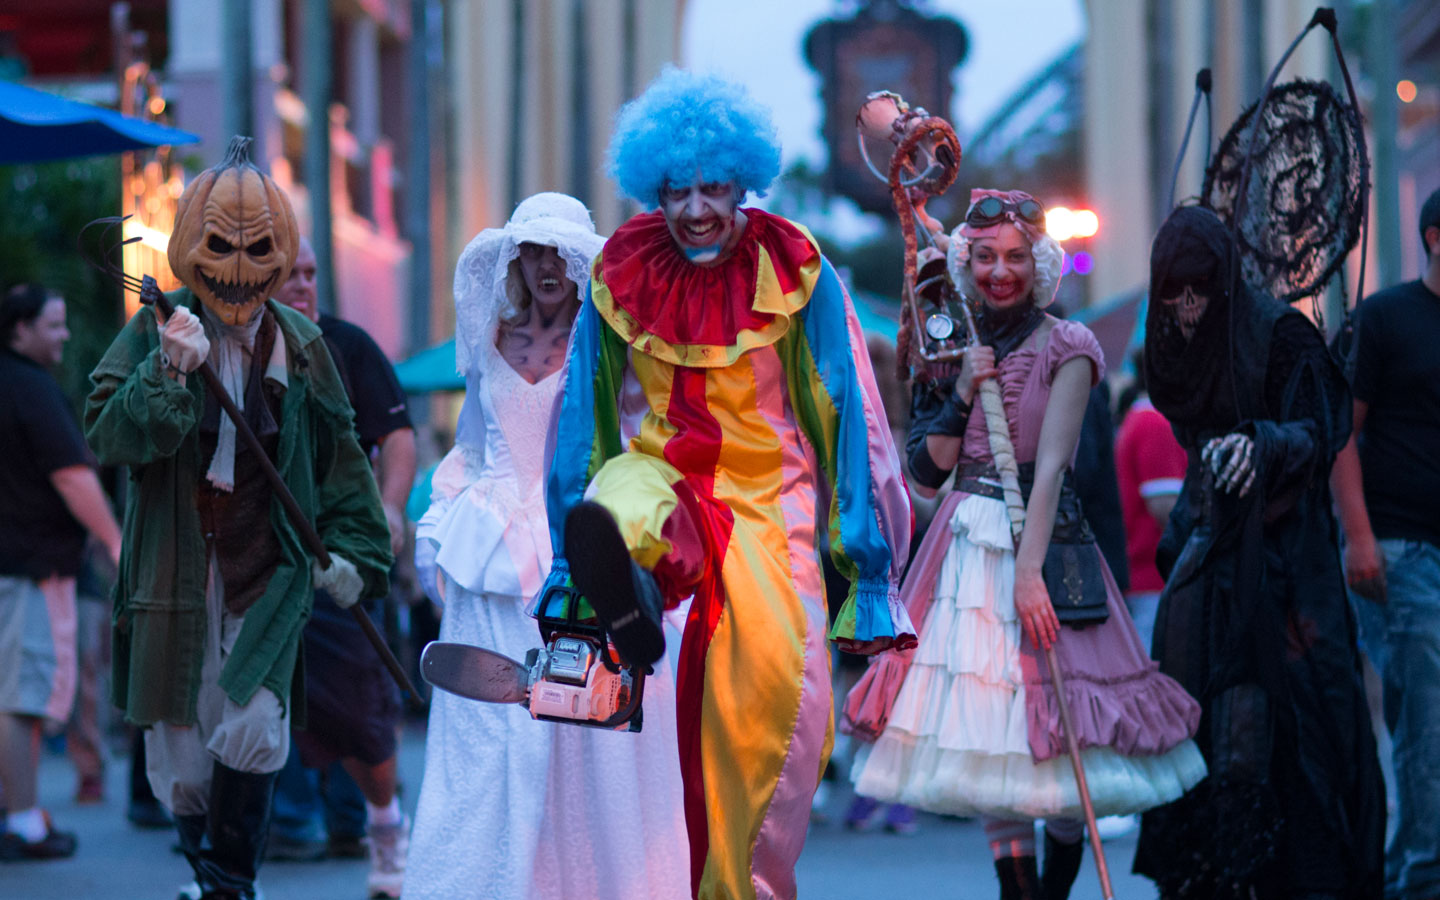 Halloween Horror Nights 27 Tickets and Packages On Sale Now ...